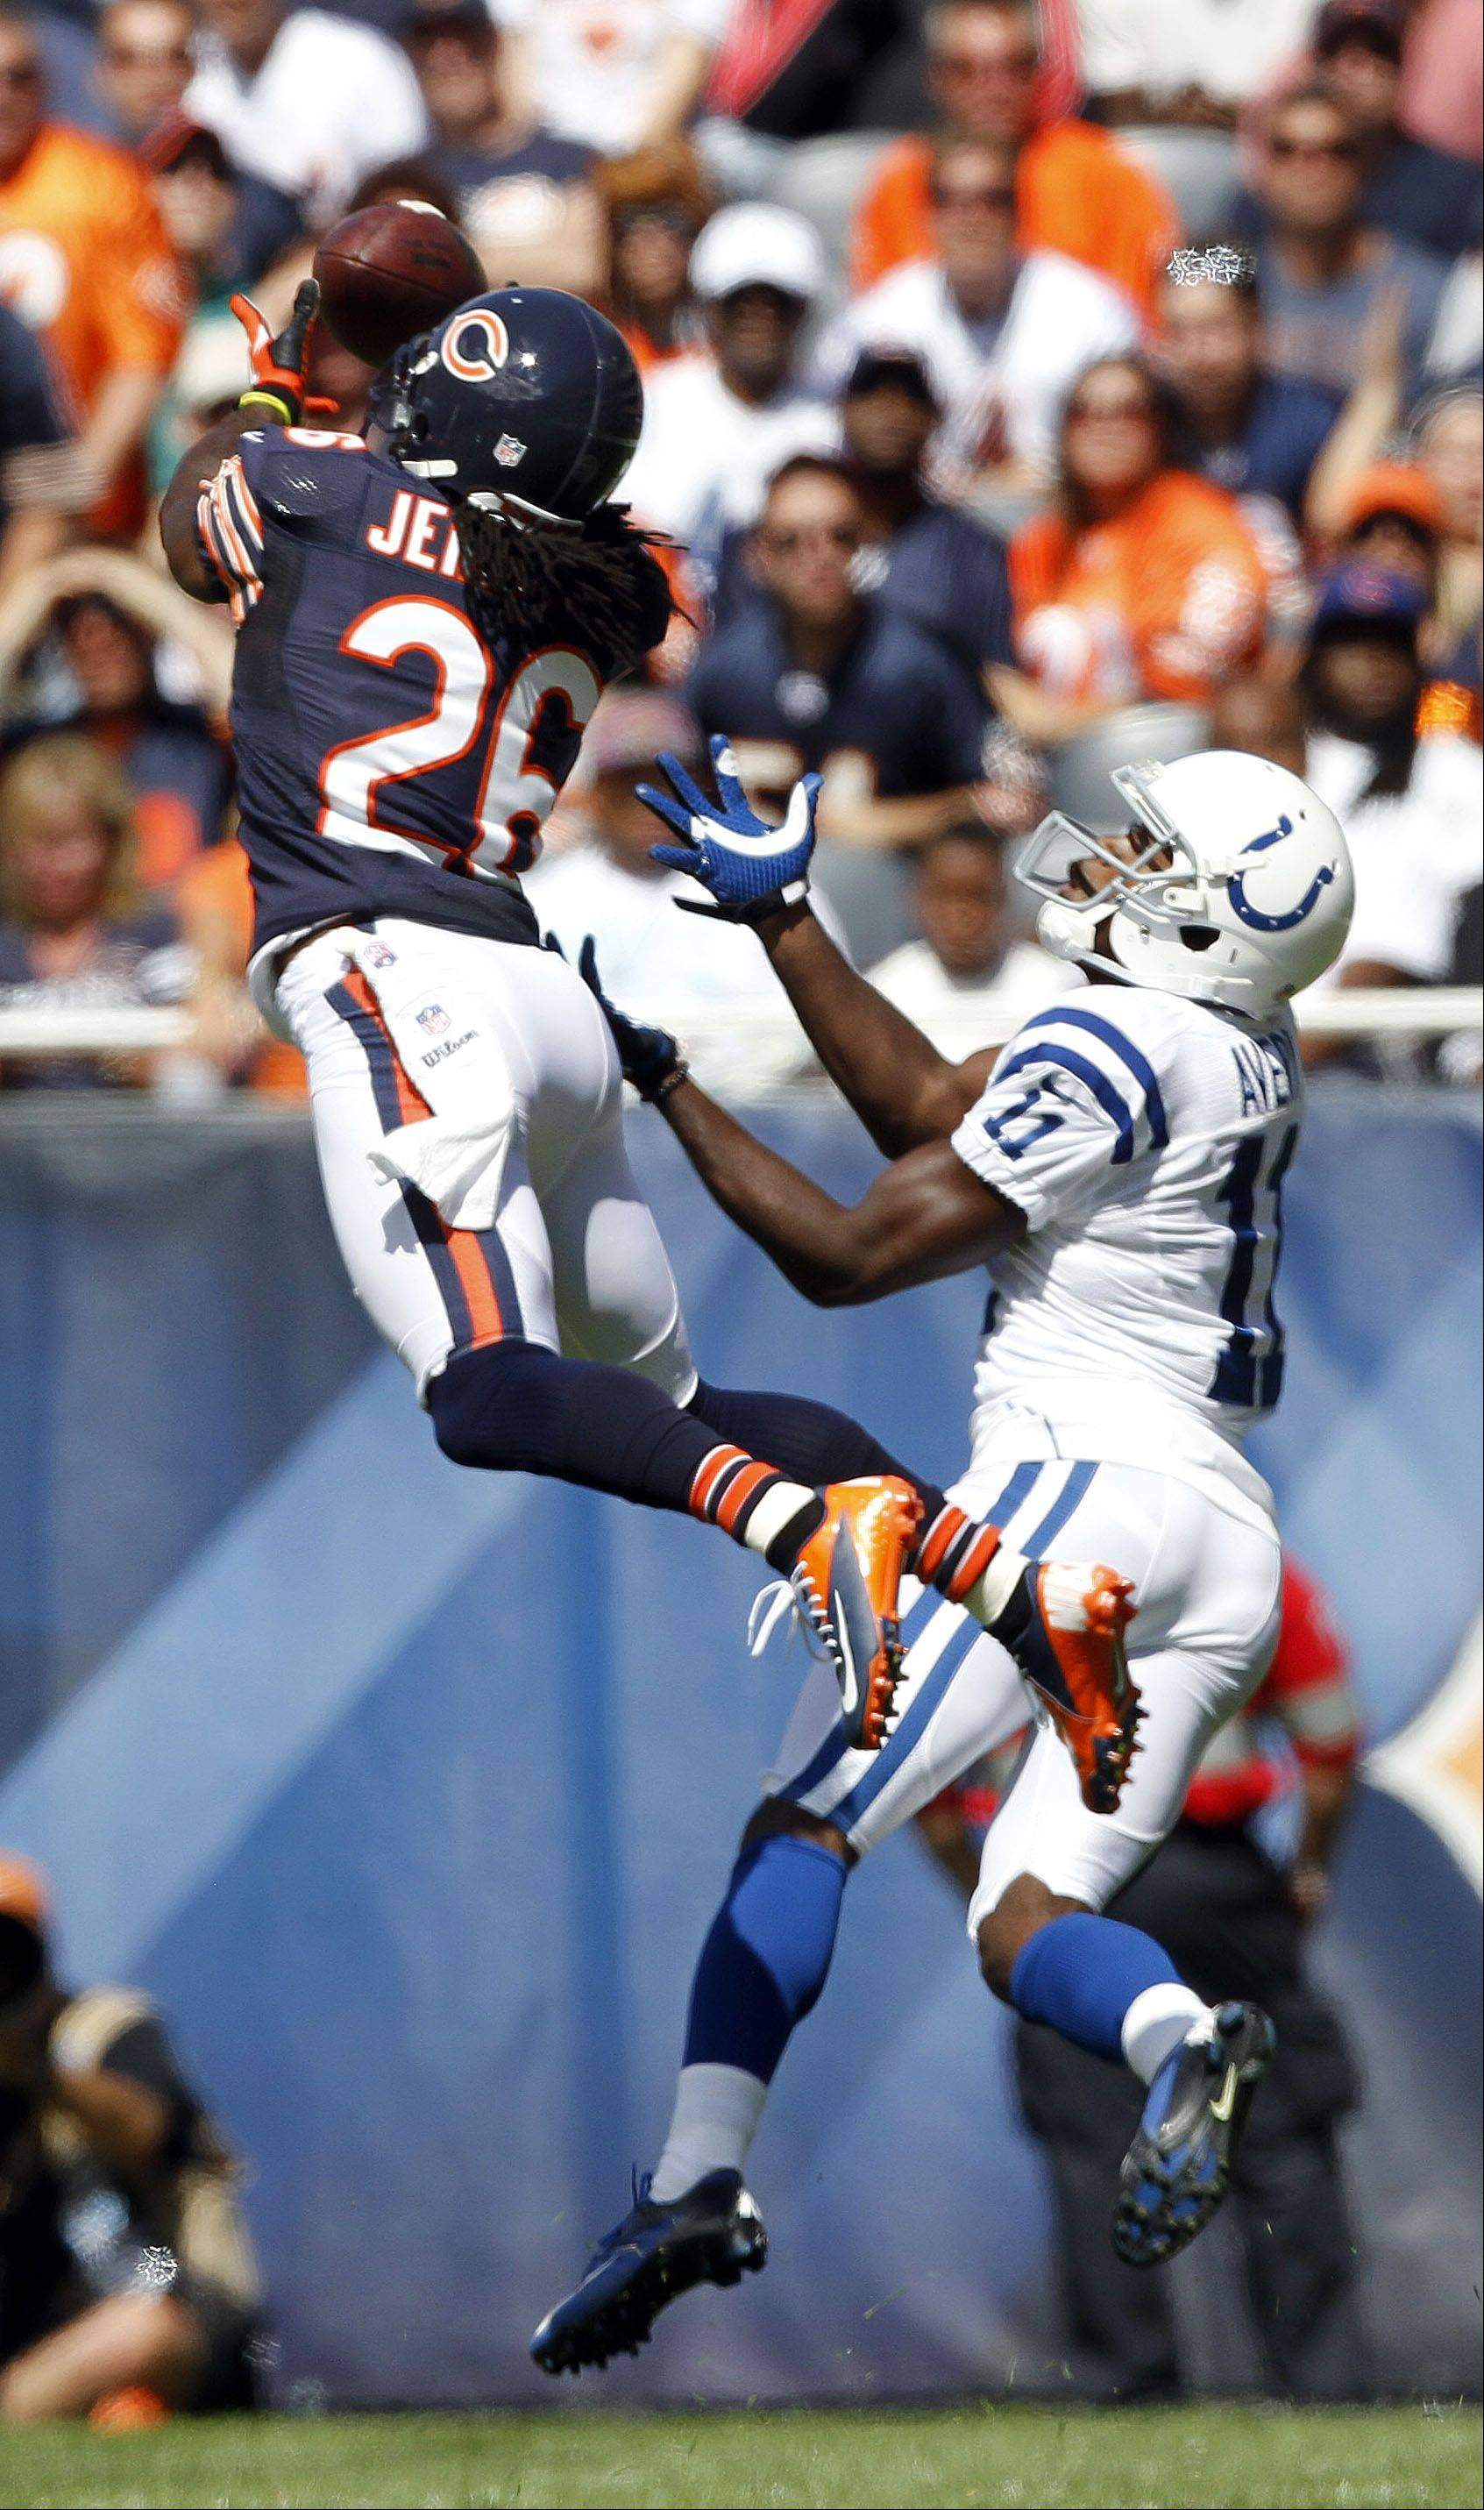 Chicago Bears cornerback Tim Jennings comes up with an interception on Indianapolis Colts wide receiver Donnie Avery during the Bears season opener.